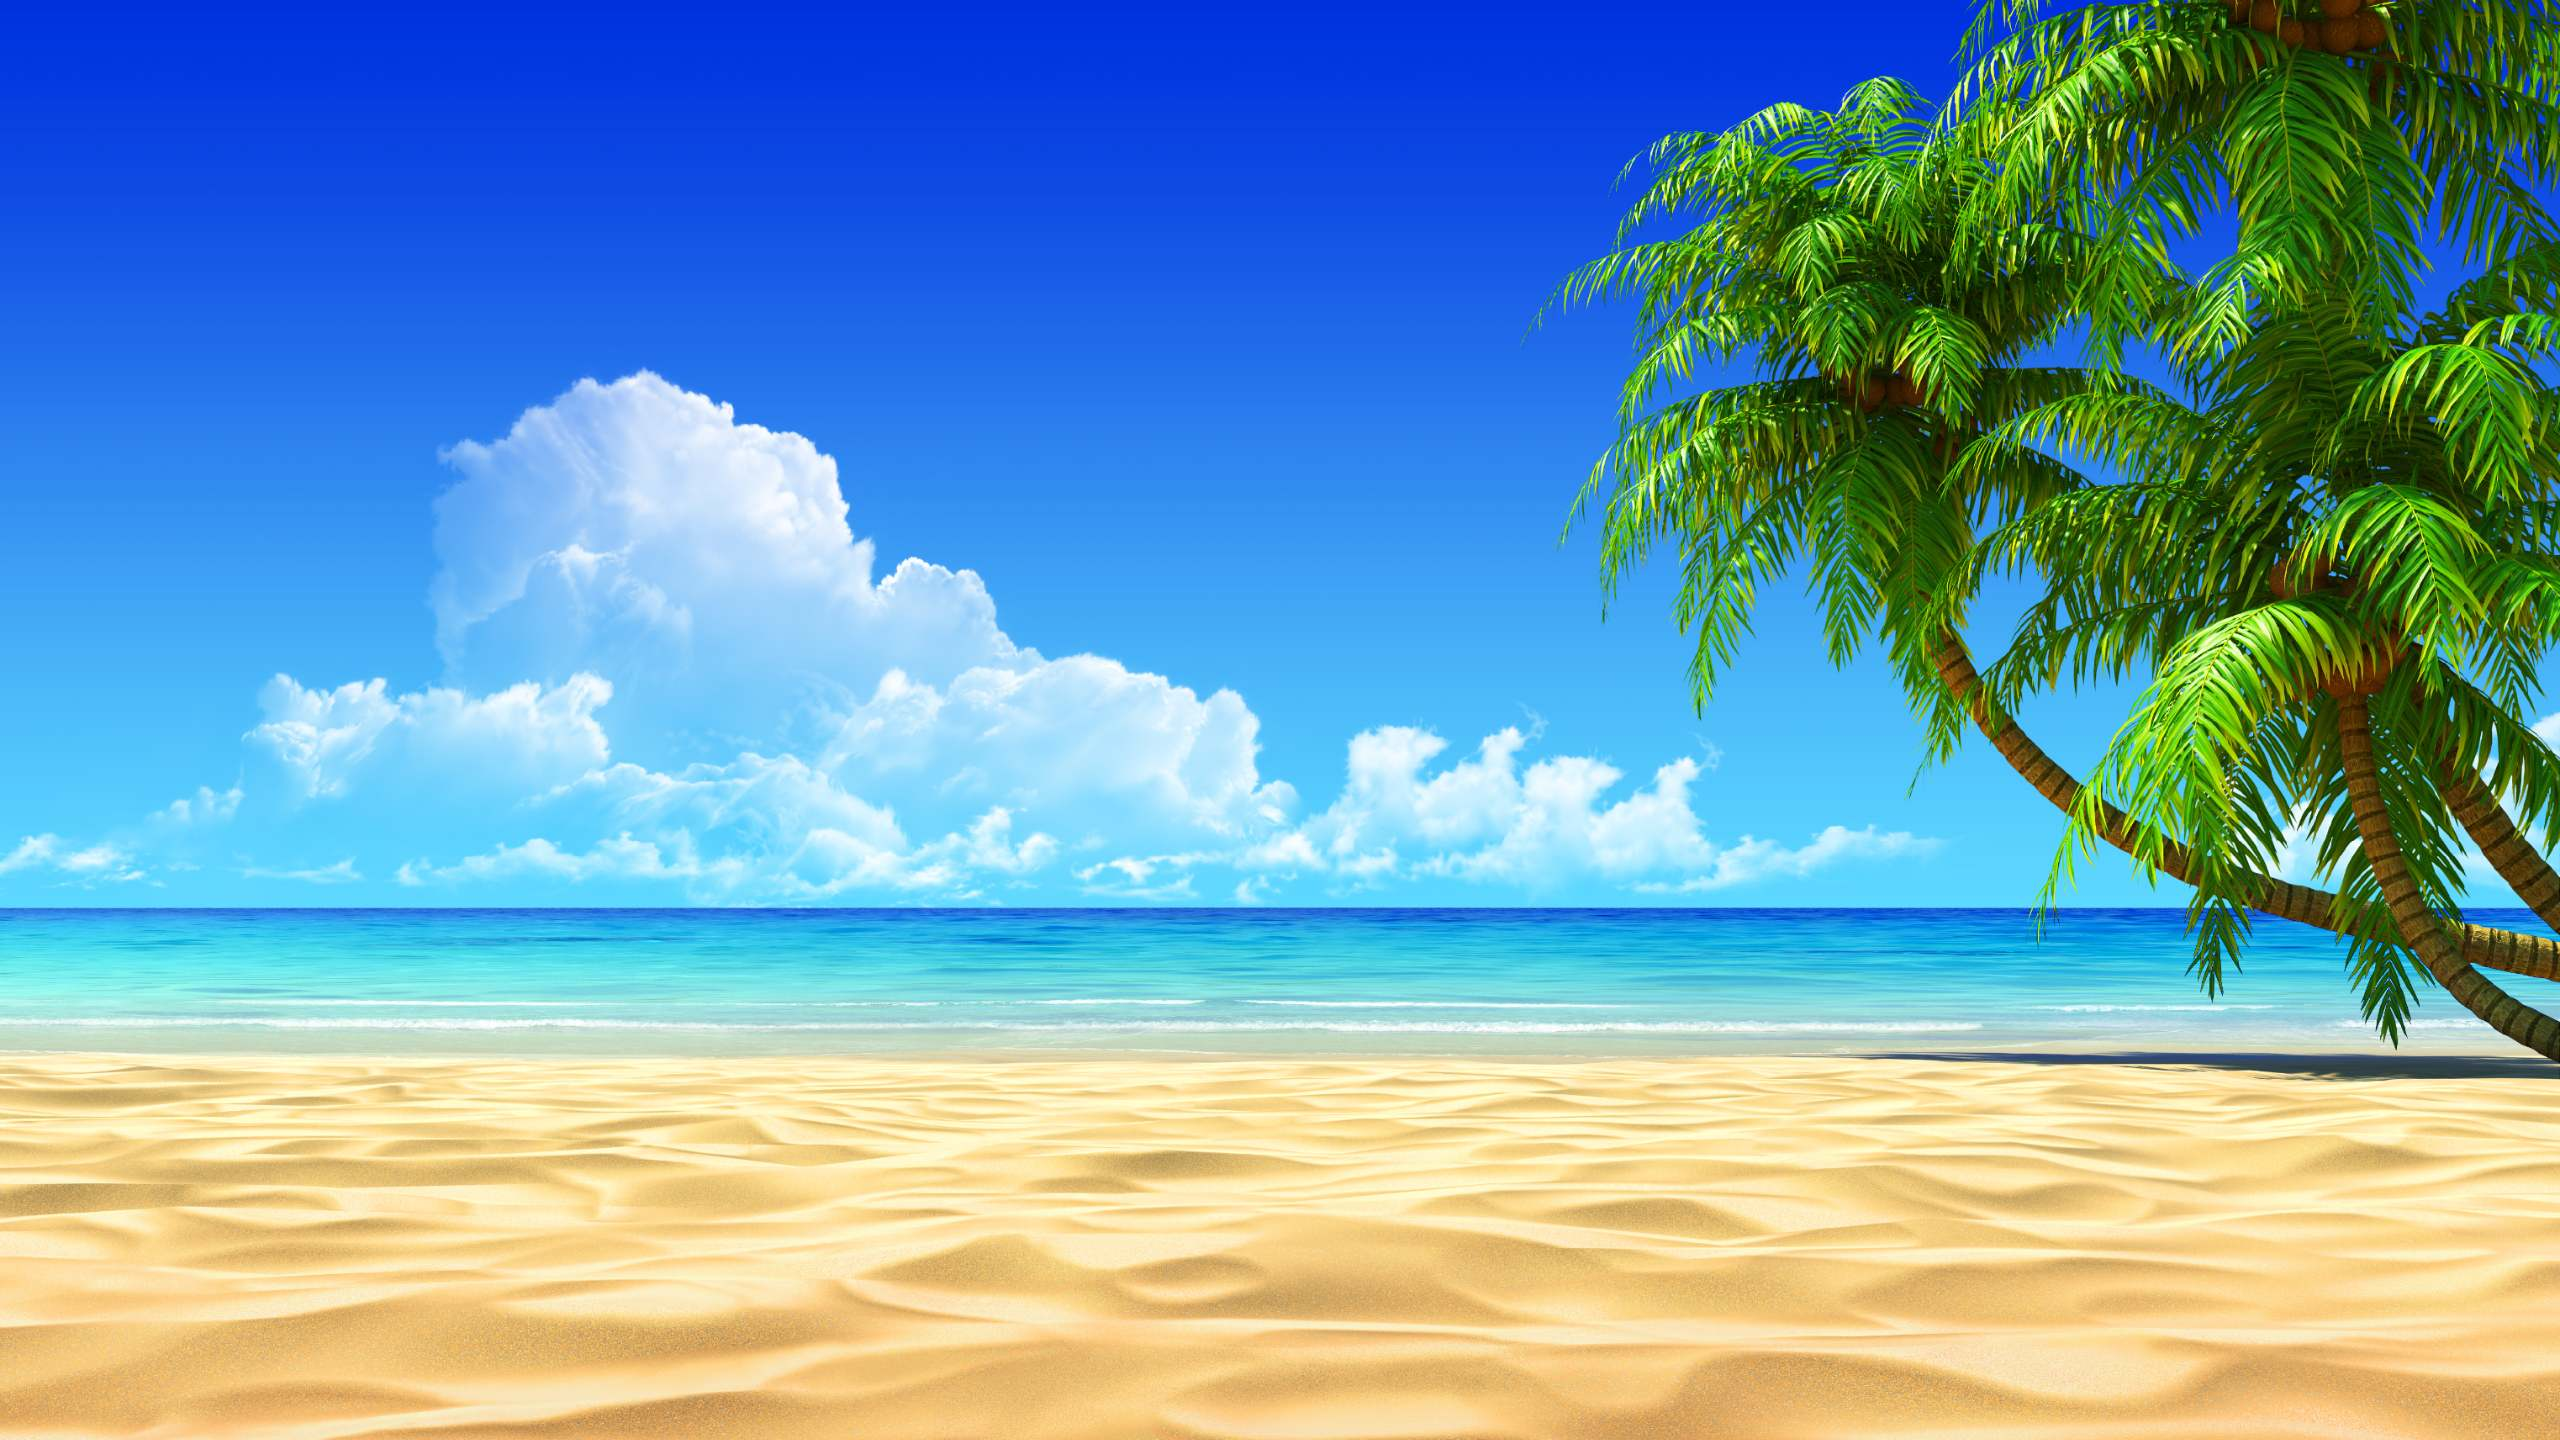 Beach Background images hd free download